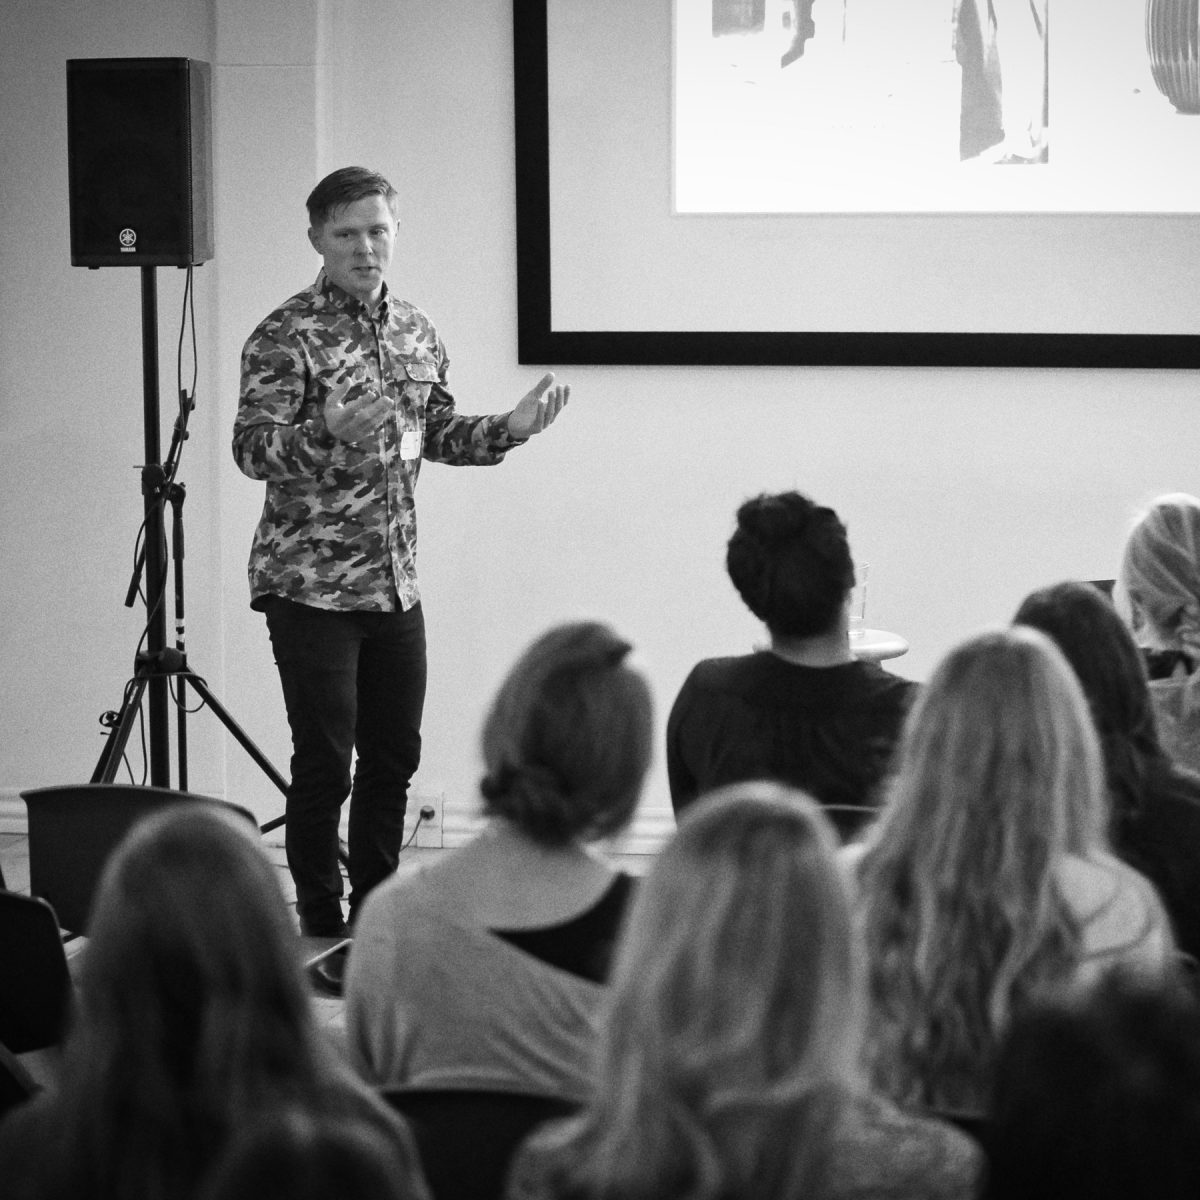 Event photography: Creative Mornings Sep 19 - Hans-Christian Bauer